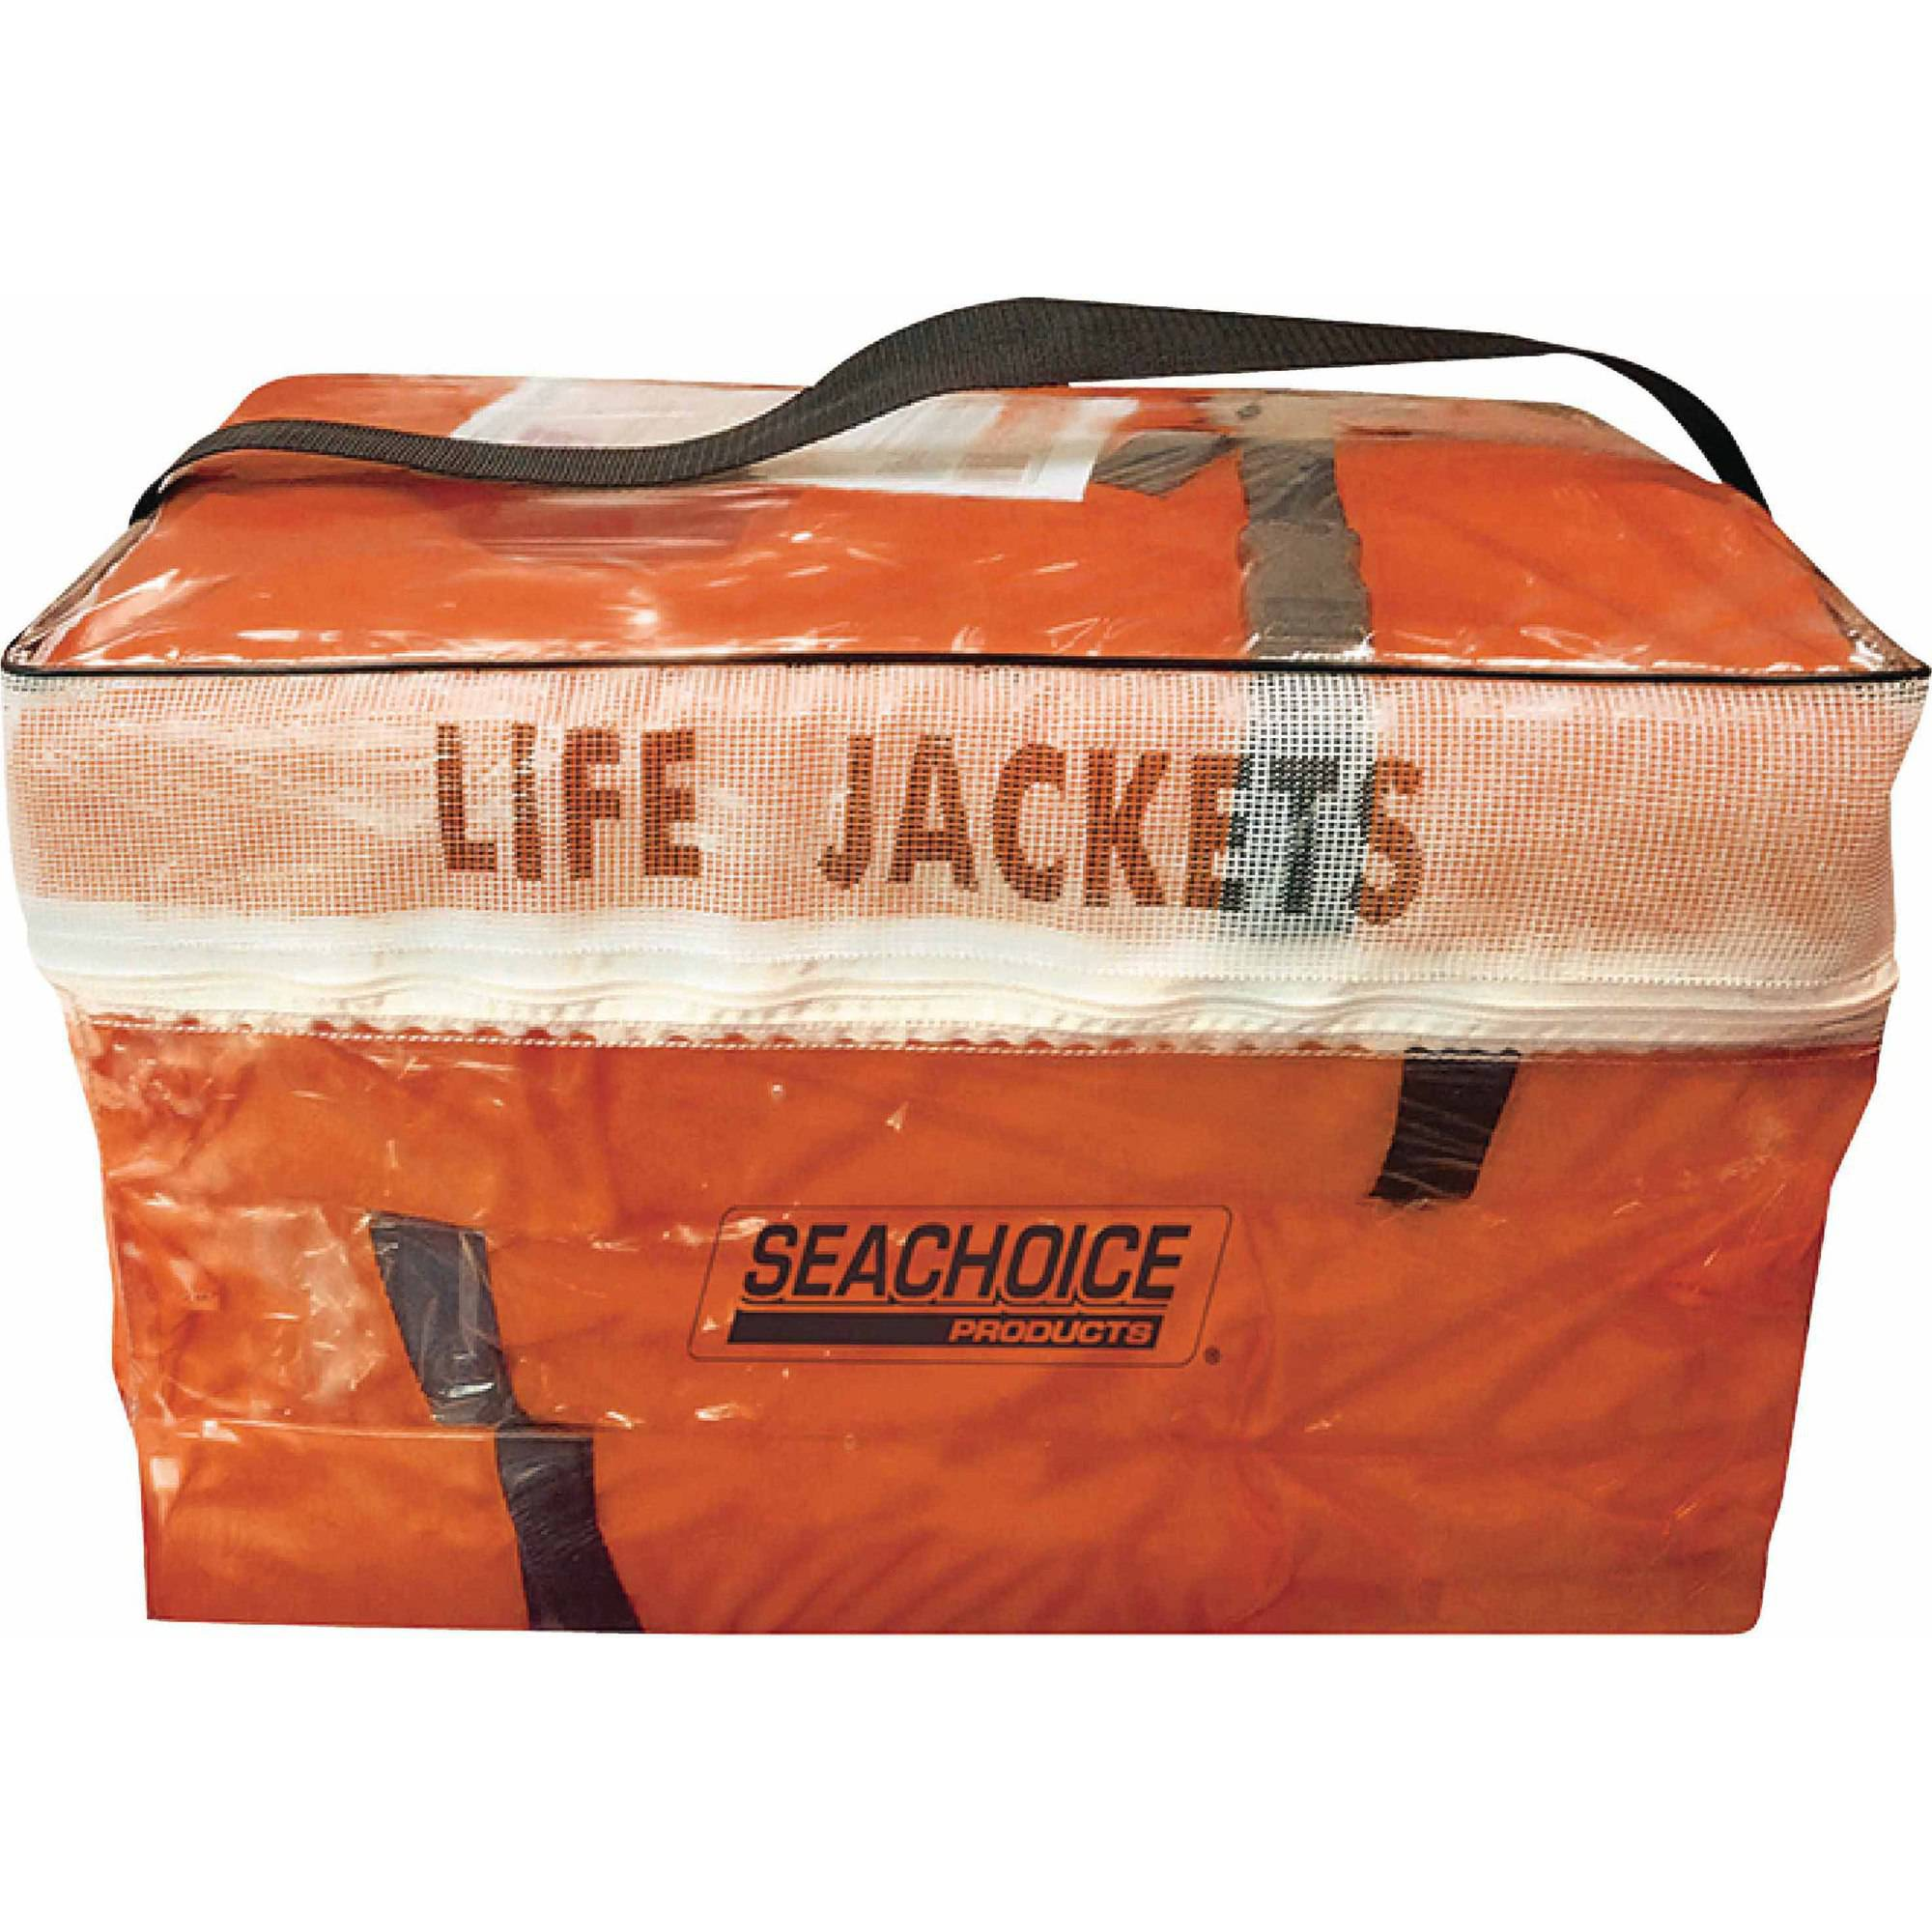 Seachoice Adult Universal Type II USCGA Life Vest Pack, Orange, 4-Pack by Seachoice Products